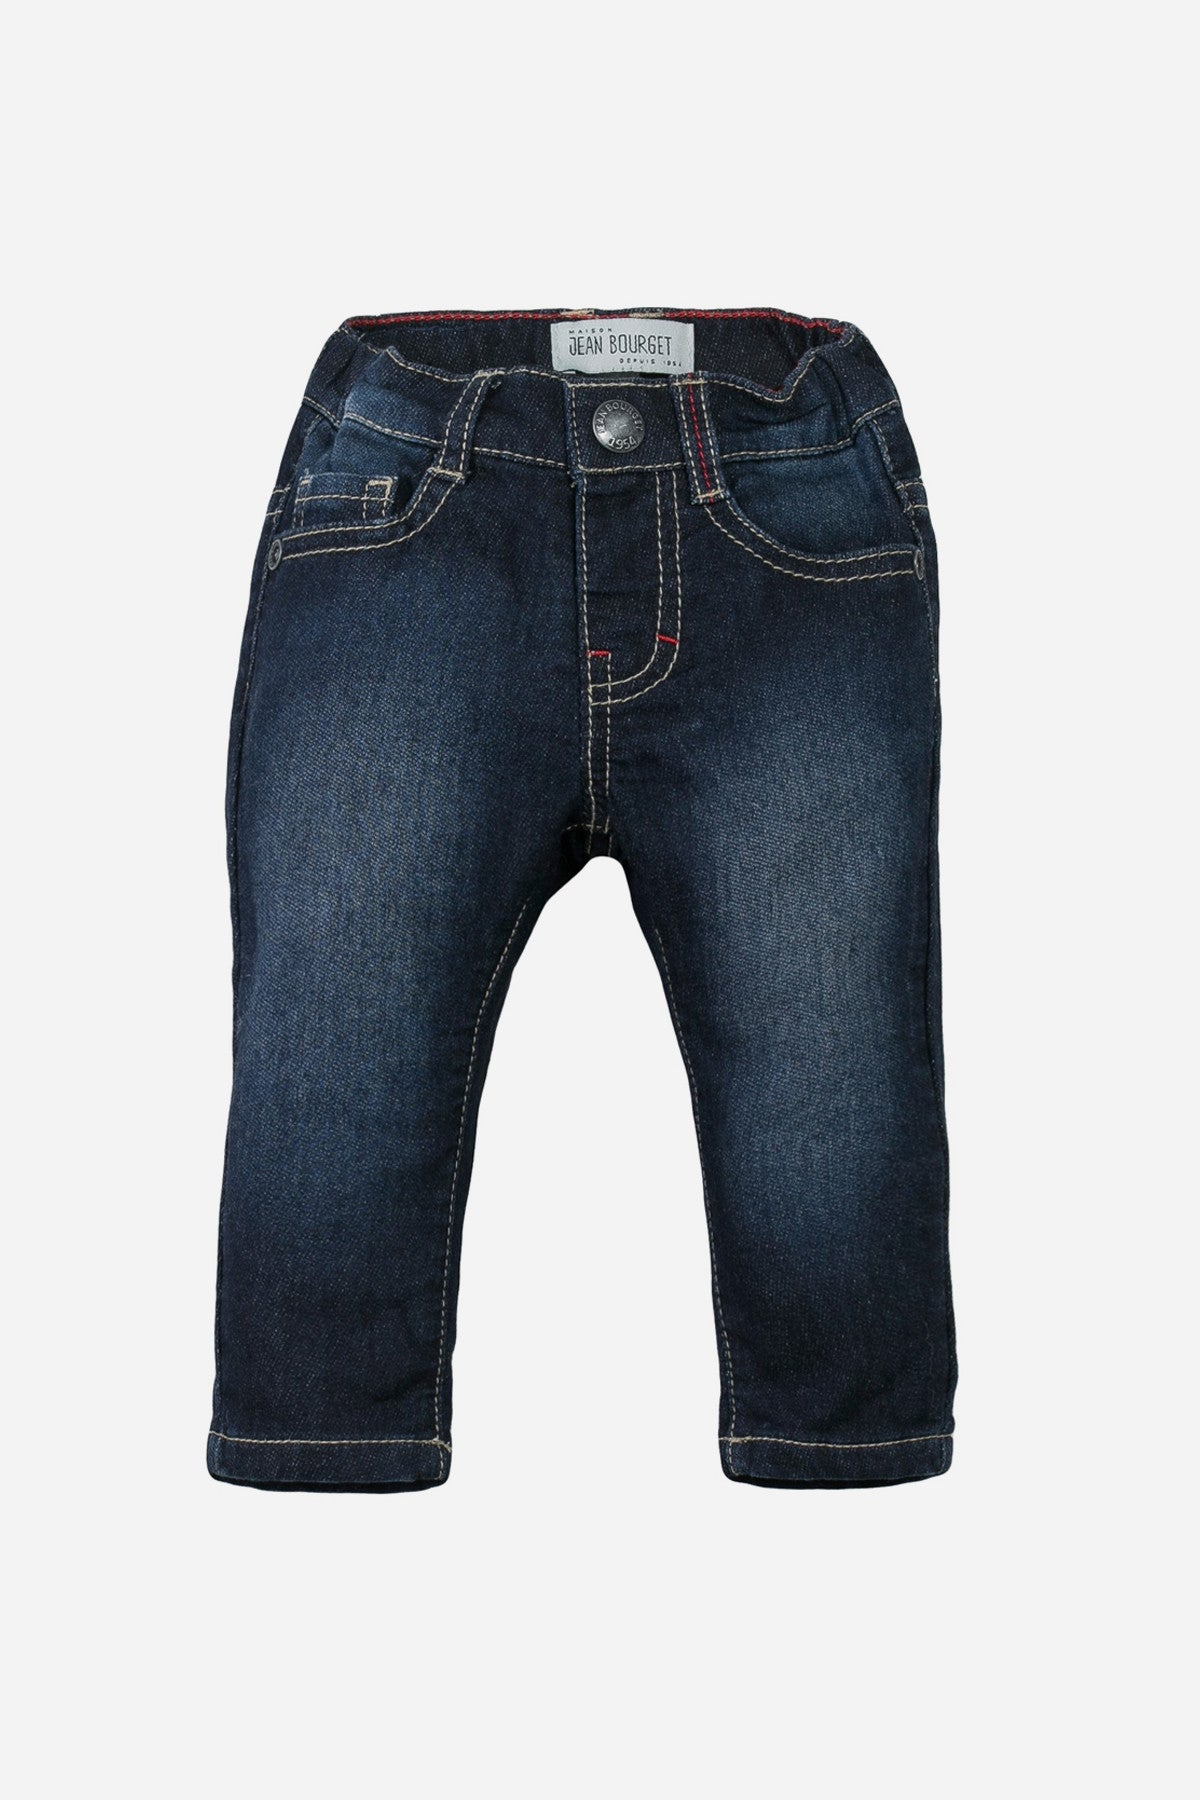 Jean Bourget Baby Blue Jean